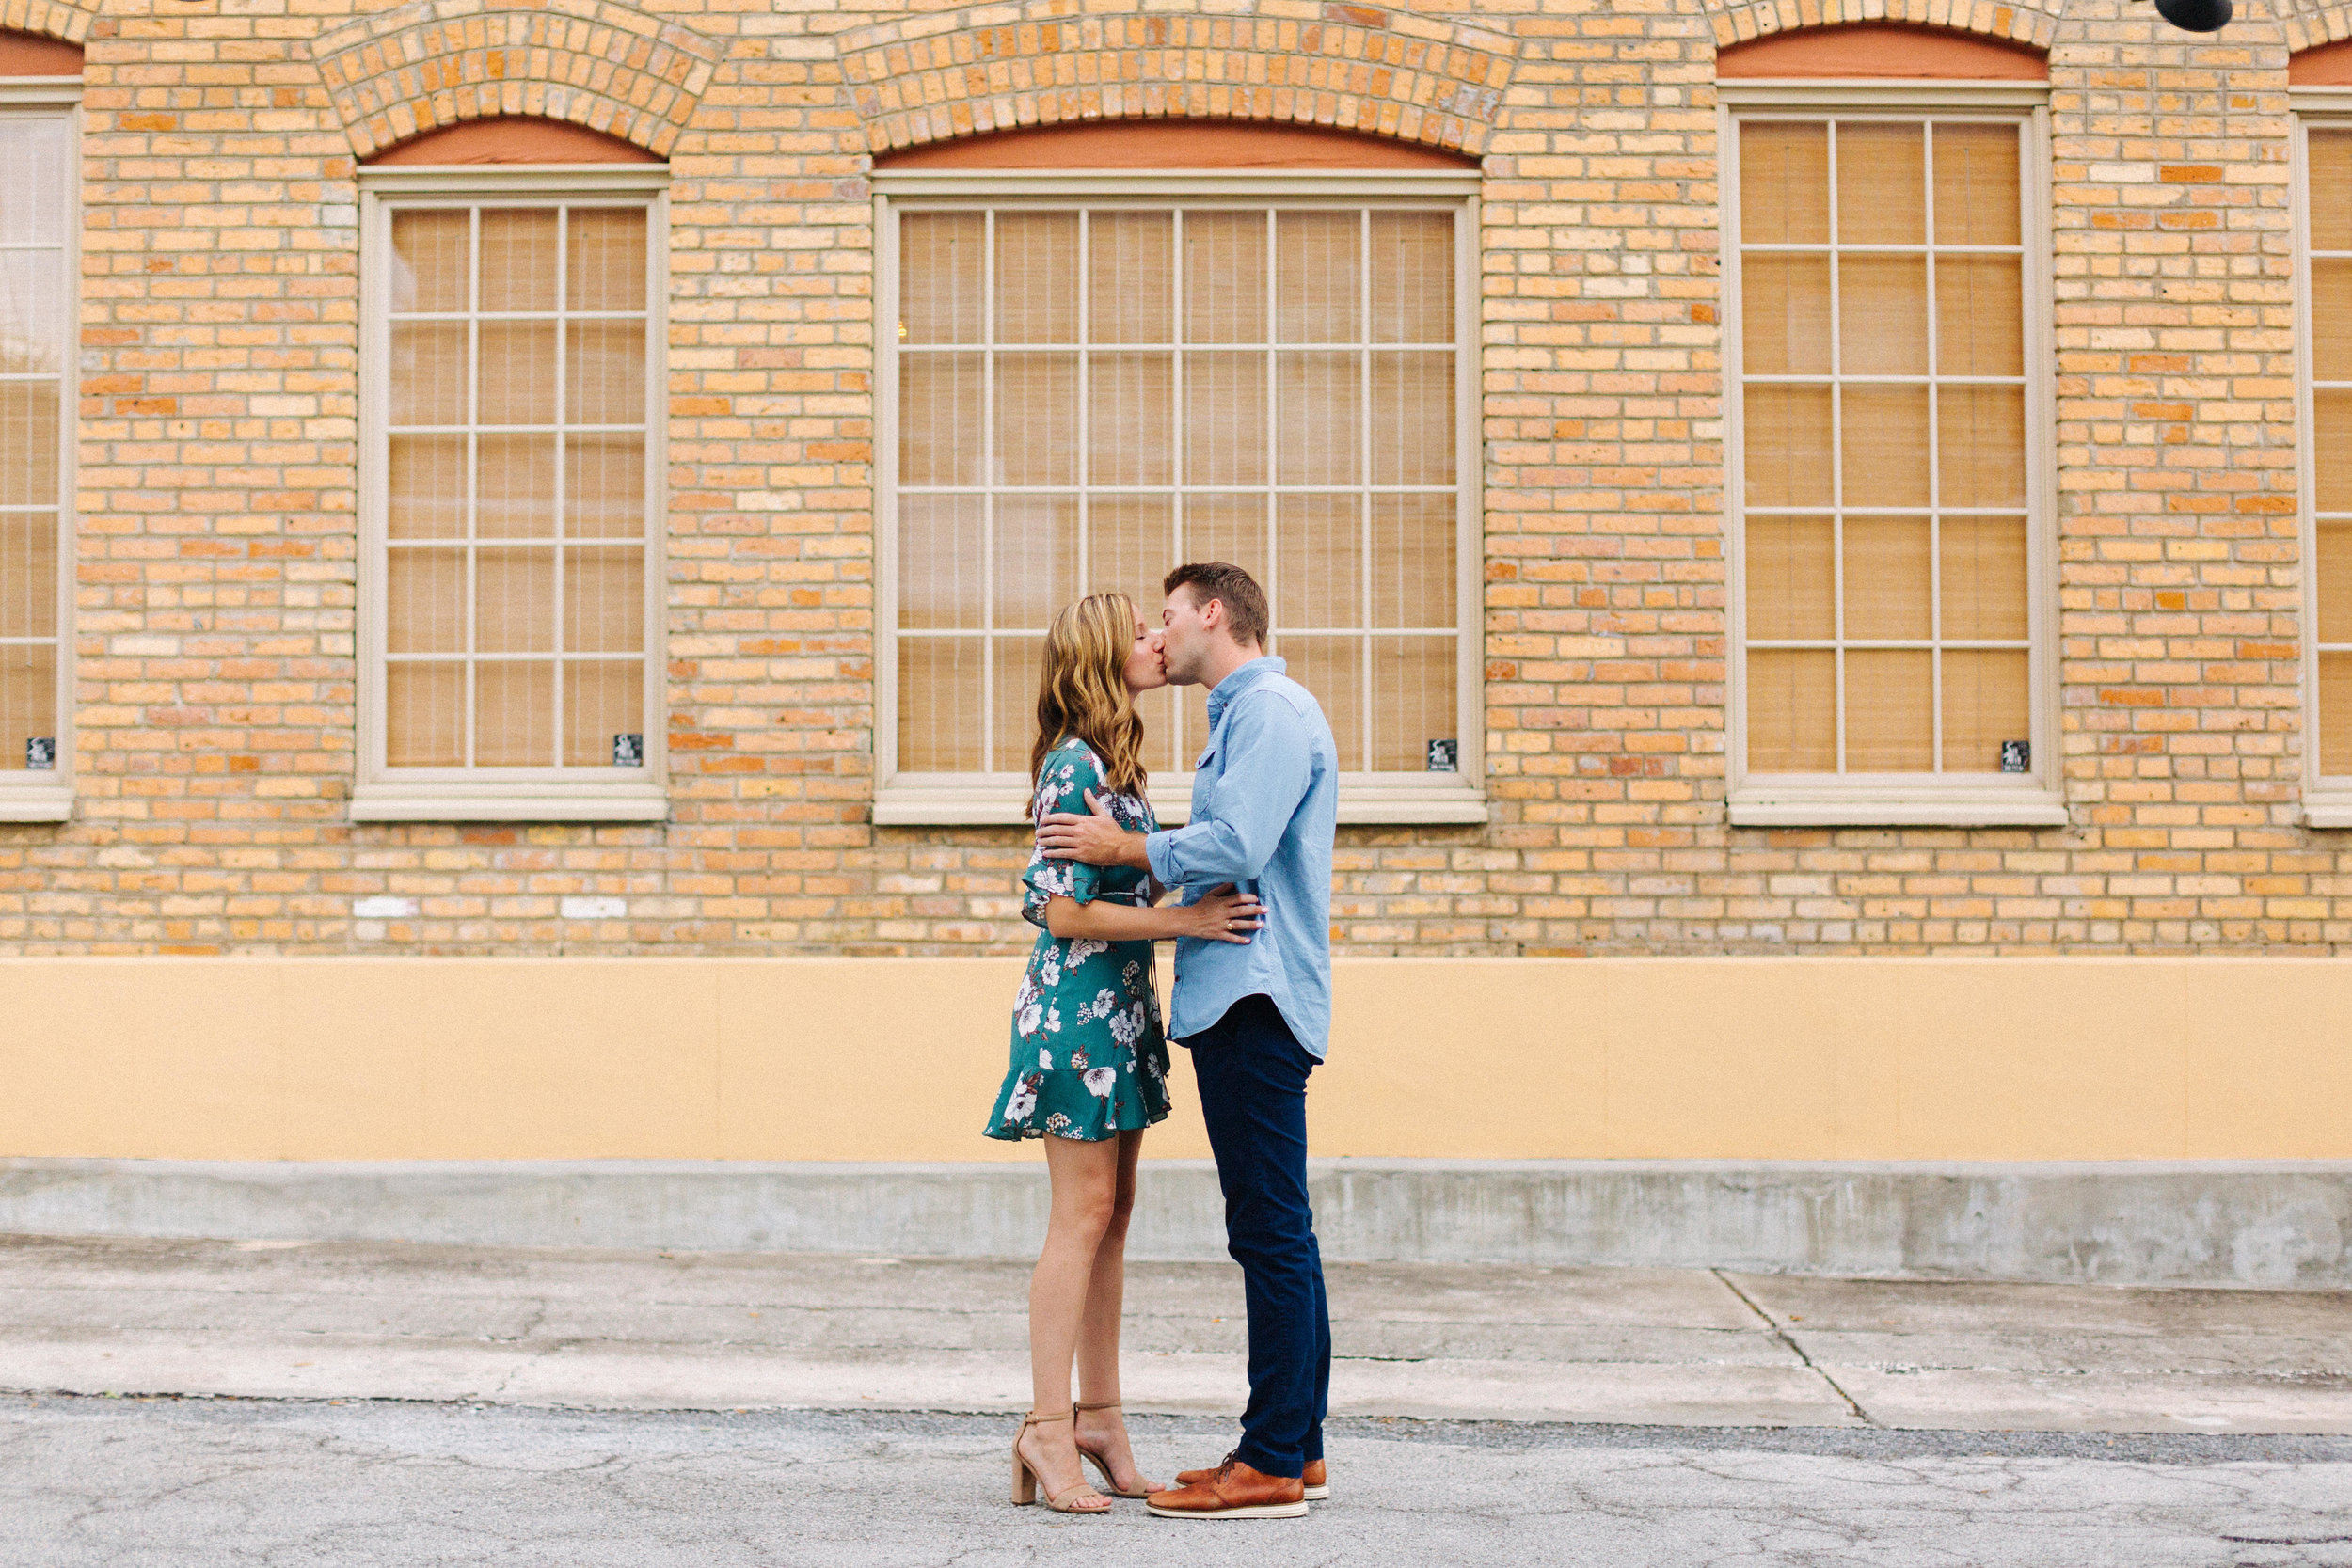 Matt _ Katie - Engagement - Jake _ Katie Photography_042.jpg